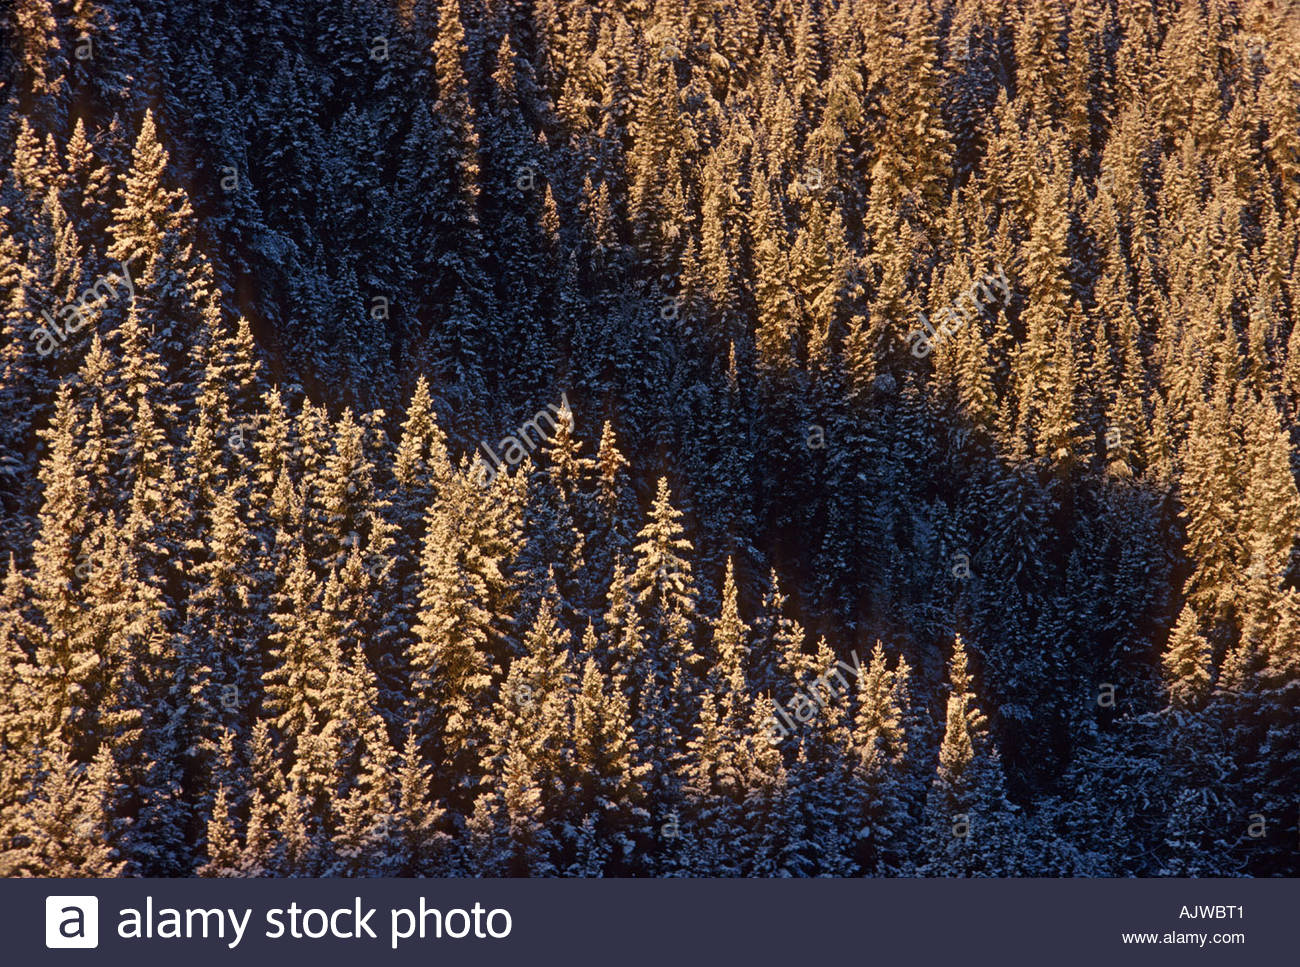 Taiga, boreal forest, coniferous evergreen forest.  White spruce, Picea glauca, trees with snow, Alberta, Canada - Stock Image